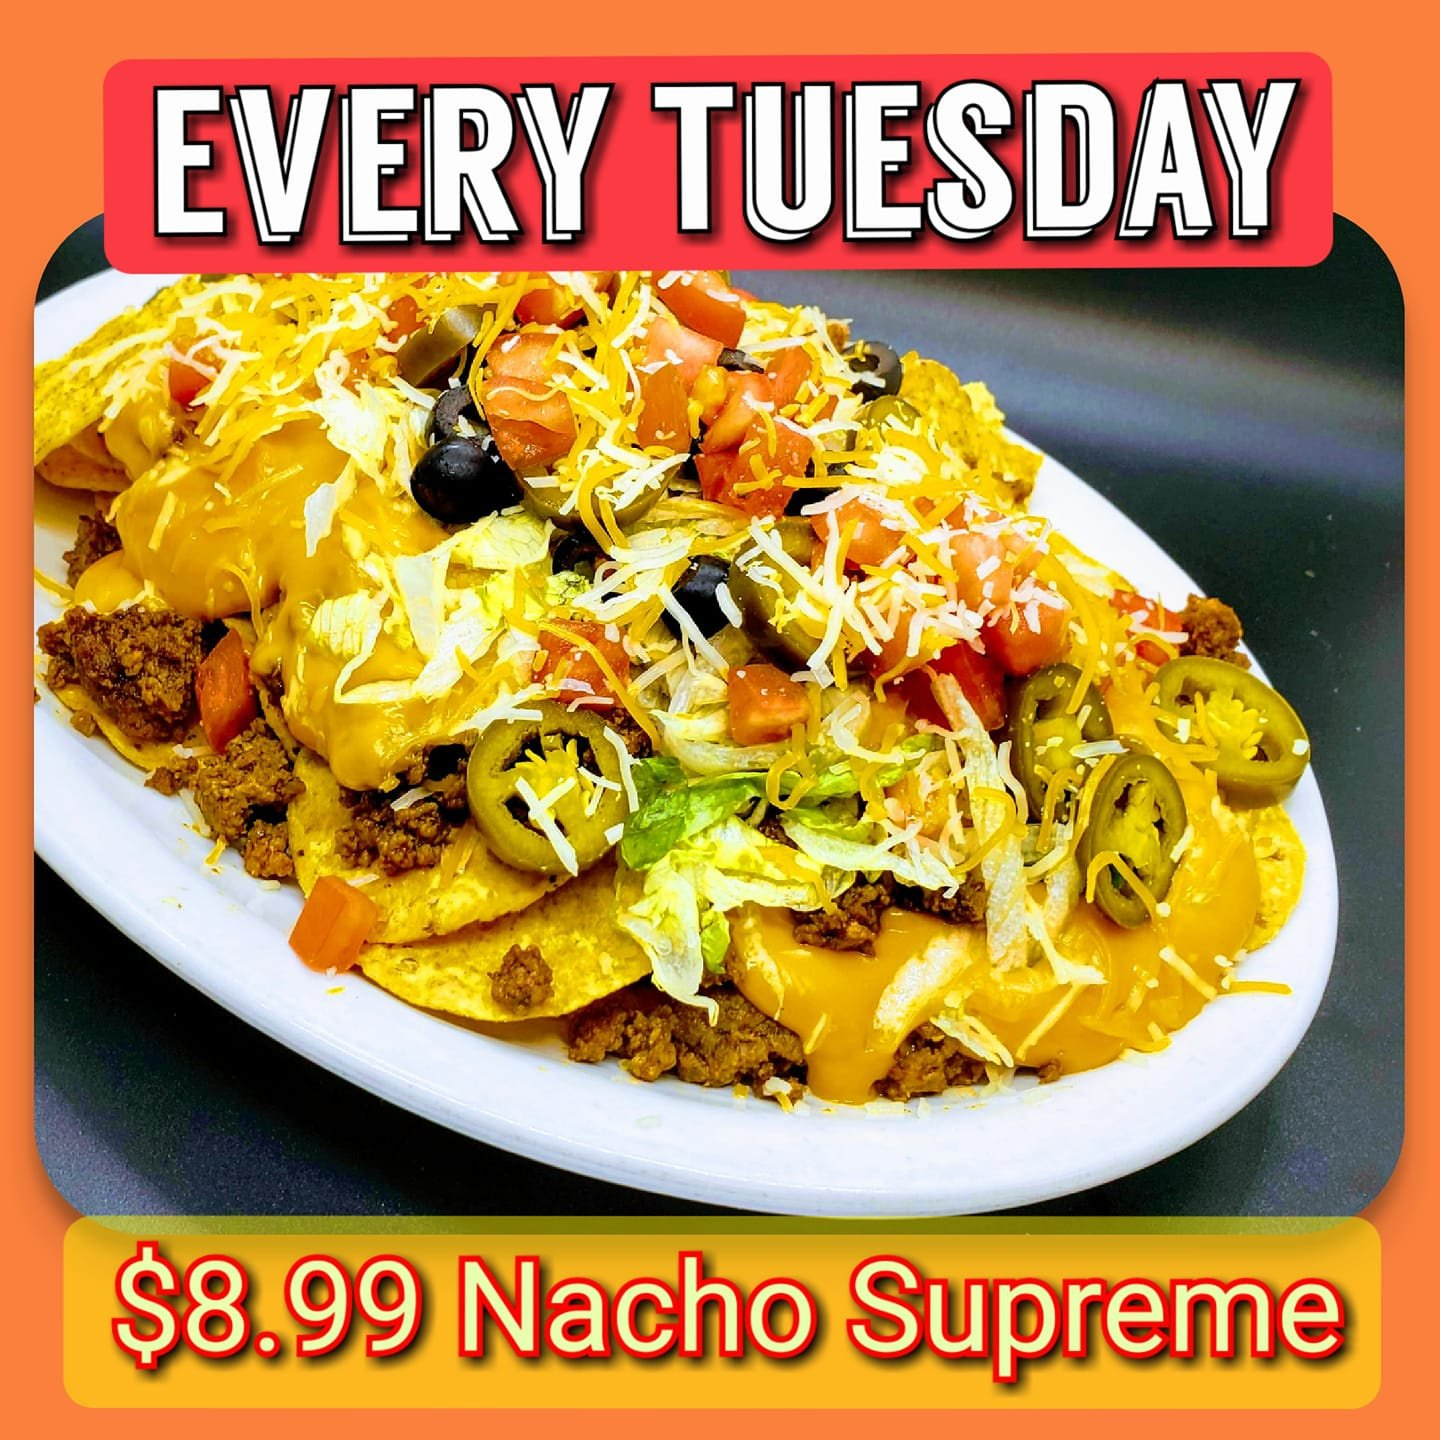 https://0201.nccdn.net/4_2/000/000/03f/ac7/Nacho-Tuesday-1440x1440.jpg